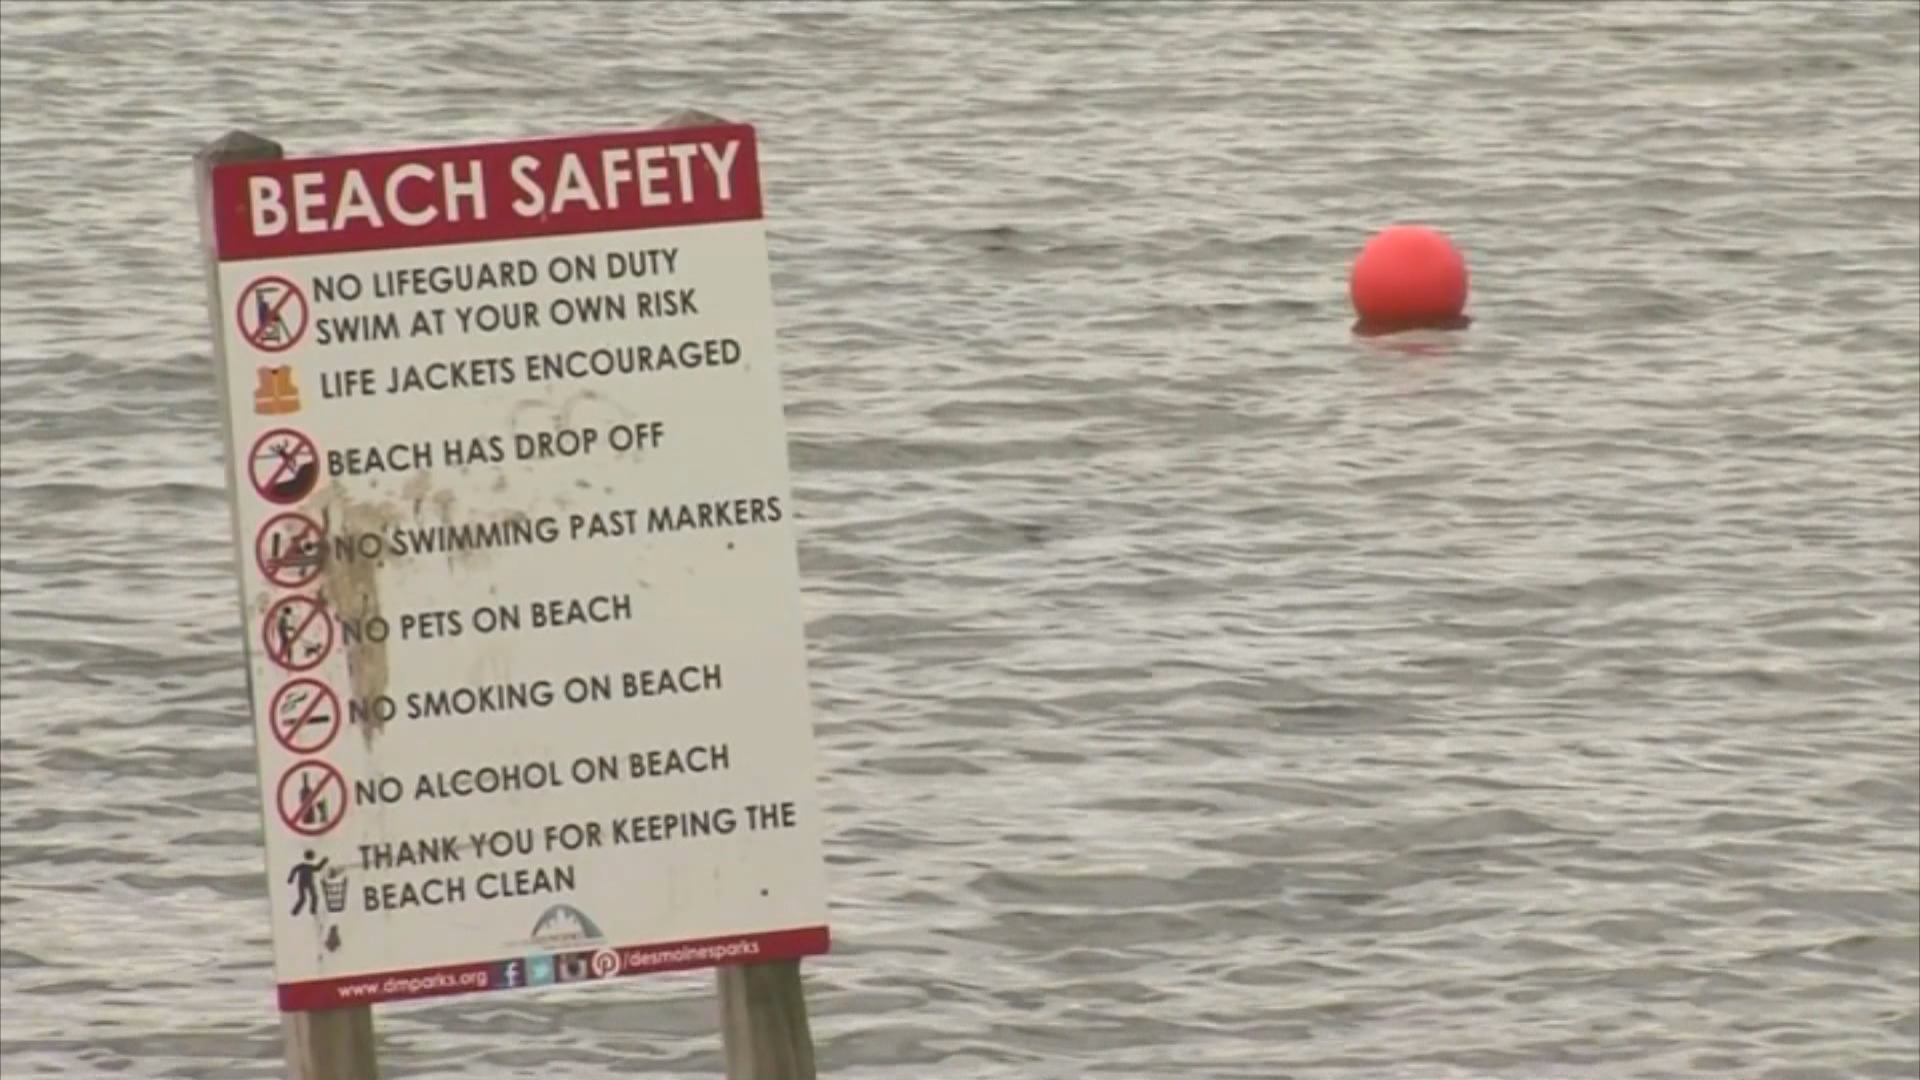 lake warnings_1533590111641.jpg.jpg